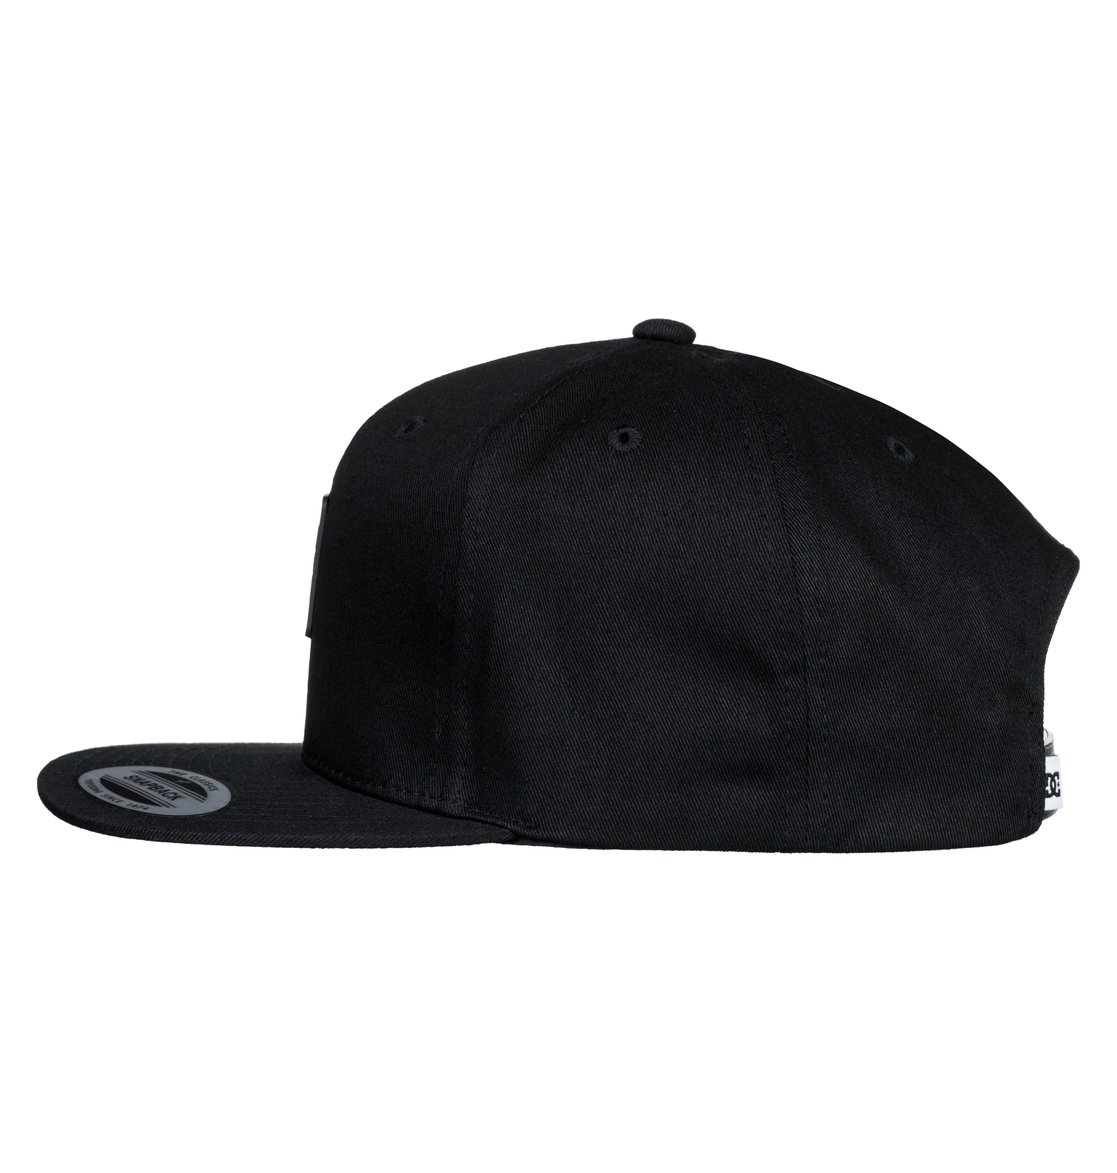 65f0f075a9f DC Shoes™ Snapdoodle Snapback Hat ADYHA03631